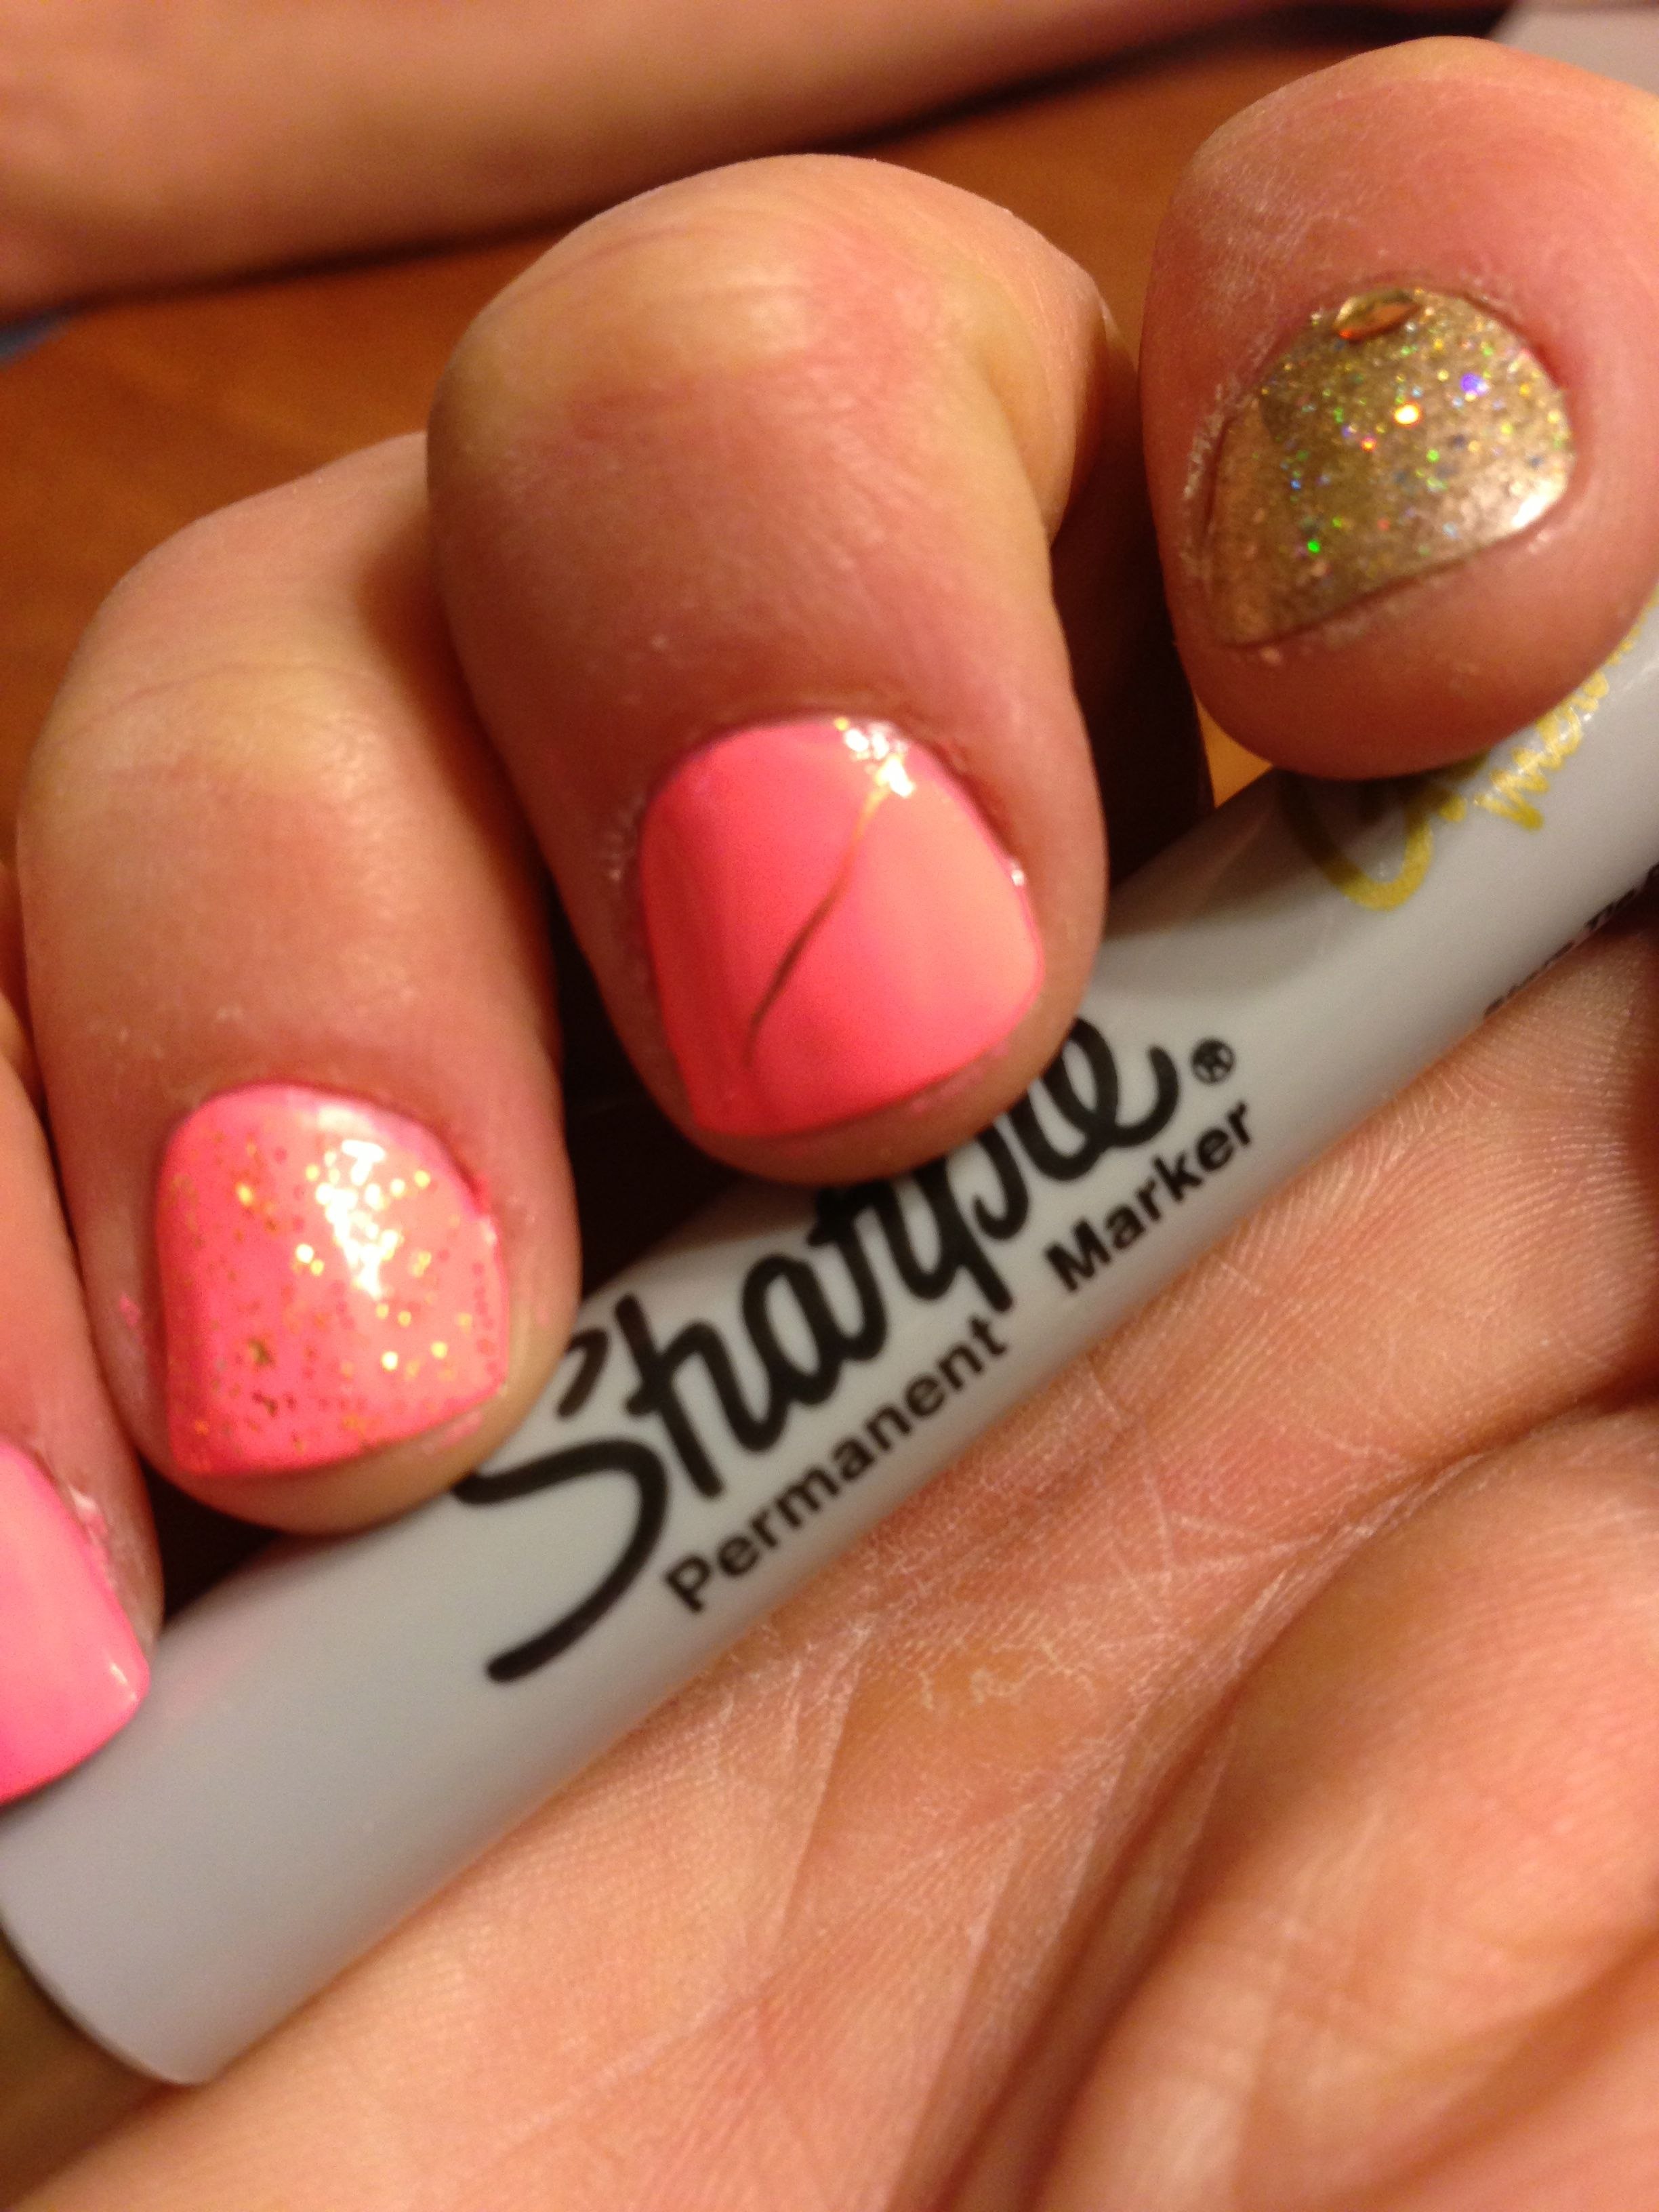 Drawing Lines On Nails : How to do feather nail art with a metallic sharpie chic